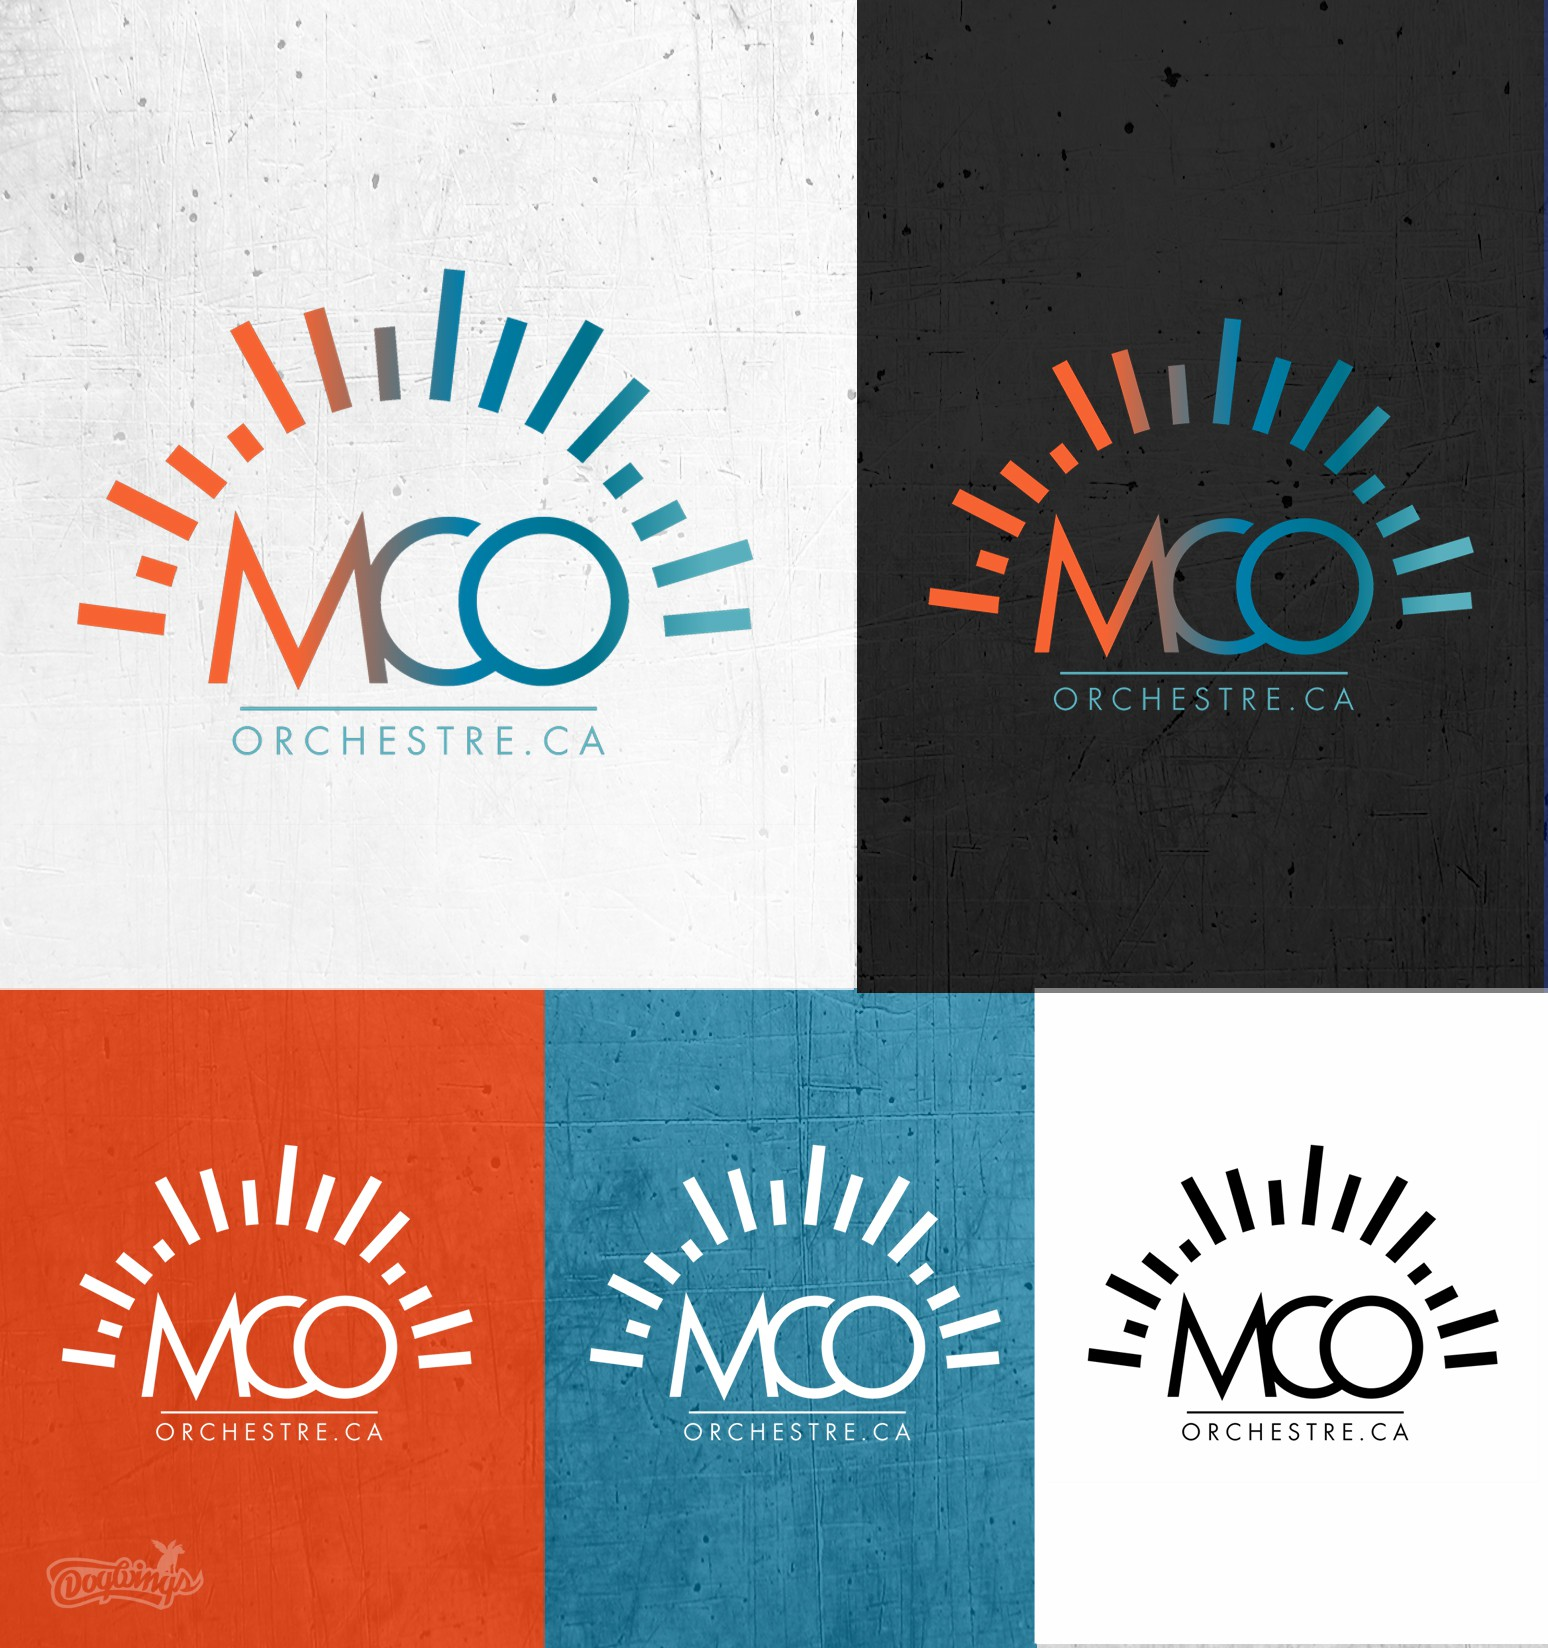 Create a new Logo and image for our Orchestra